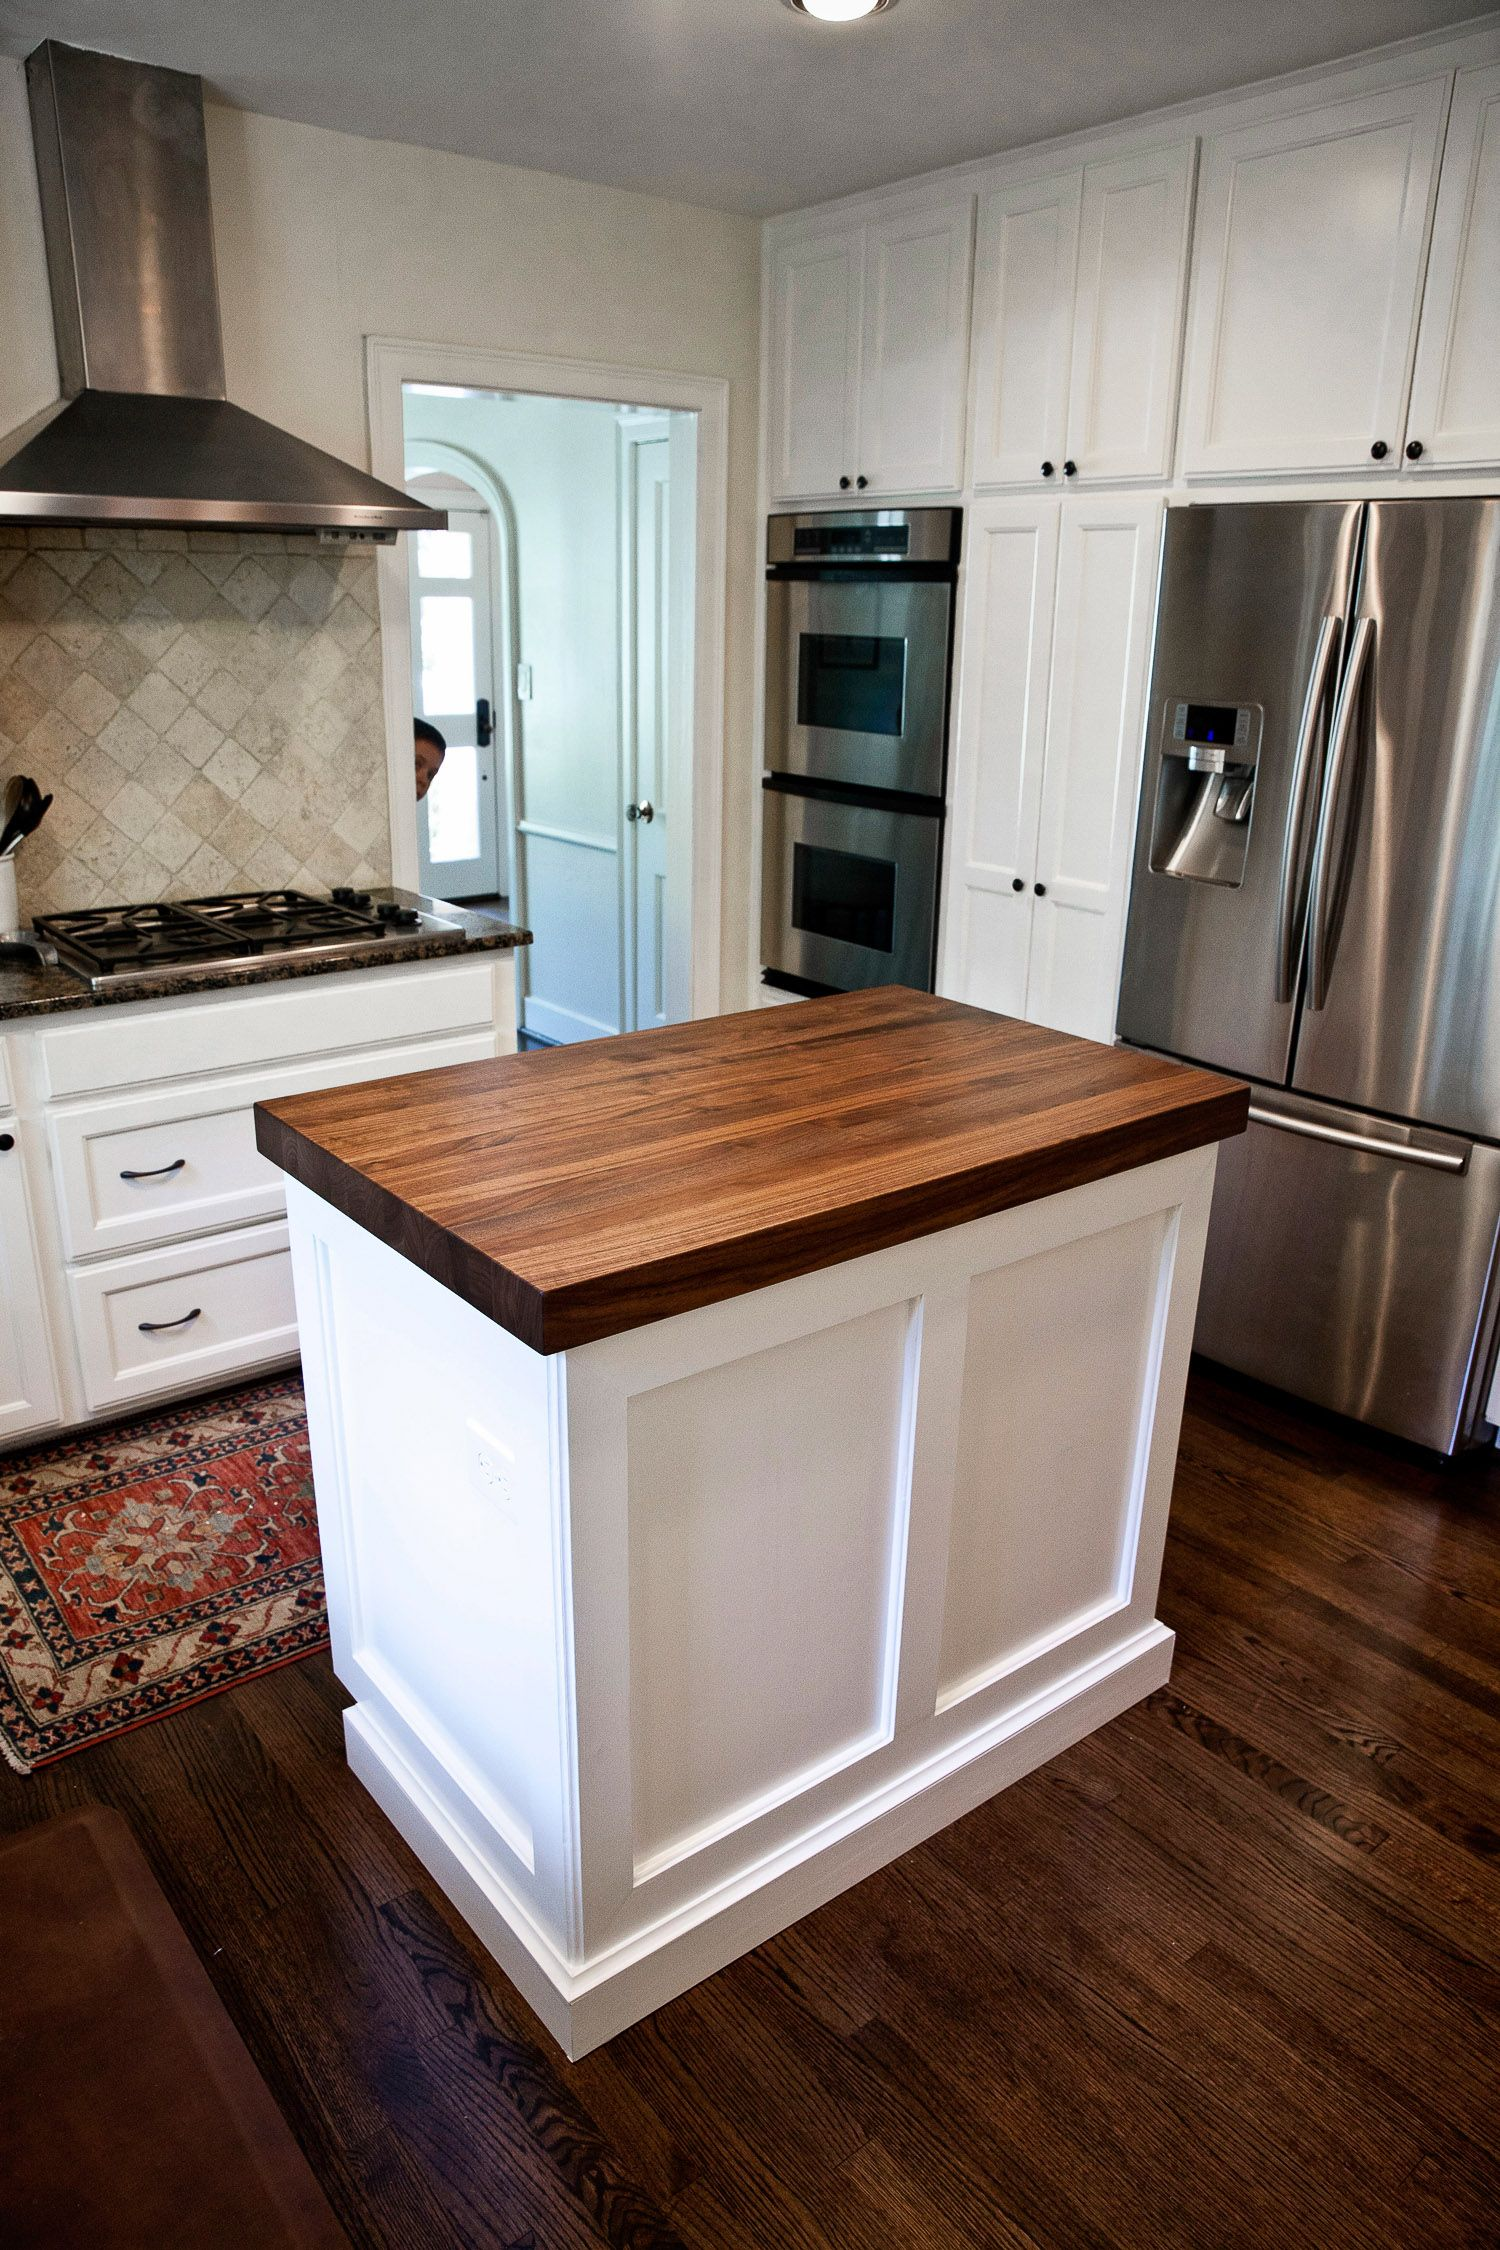 18 Unique Small Kitchen Island Ideas for Every Space and Budget ...